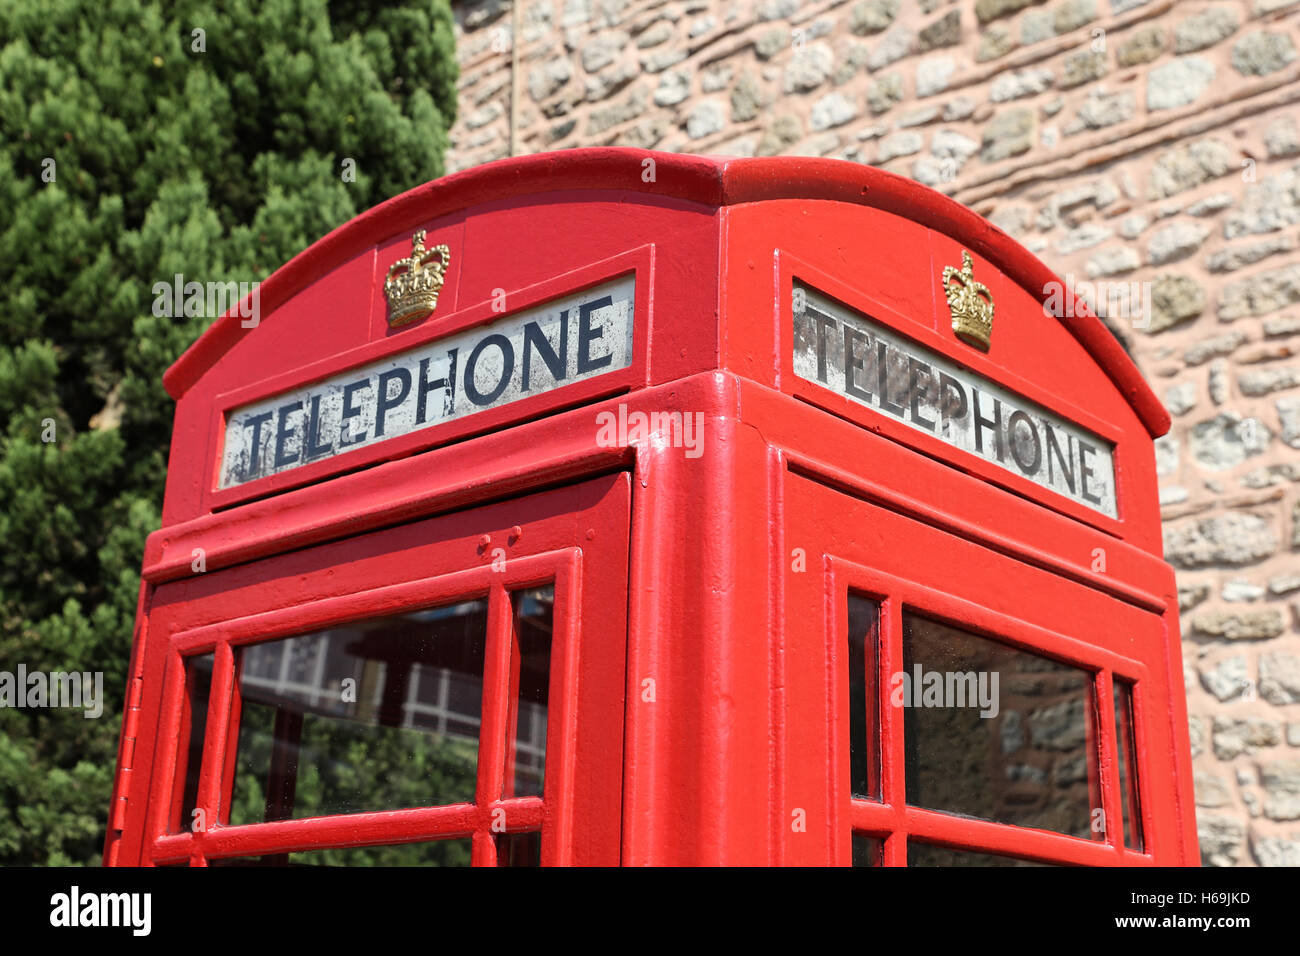 The red telephone box, a telephone kiosk for a public telephone - Stock Image